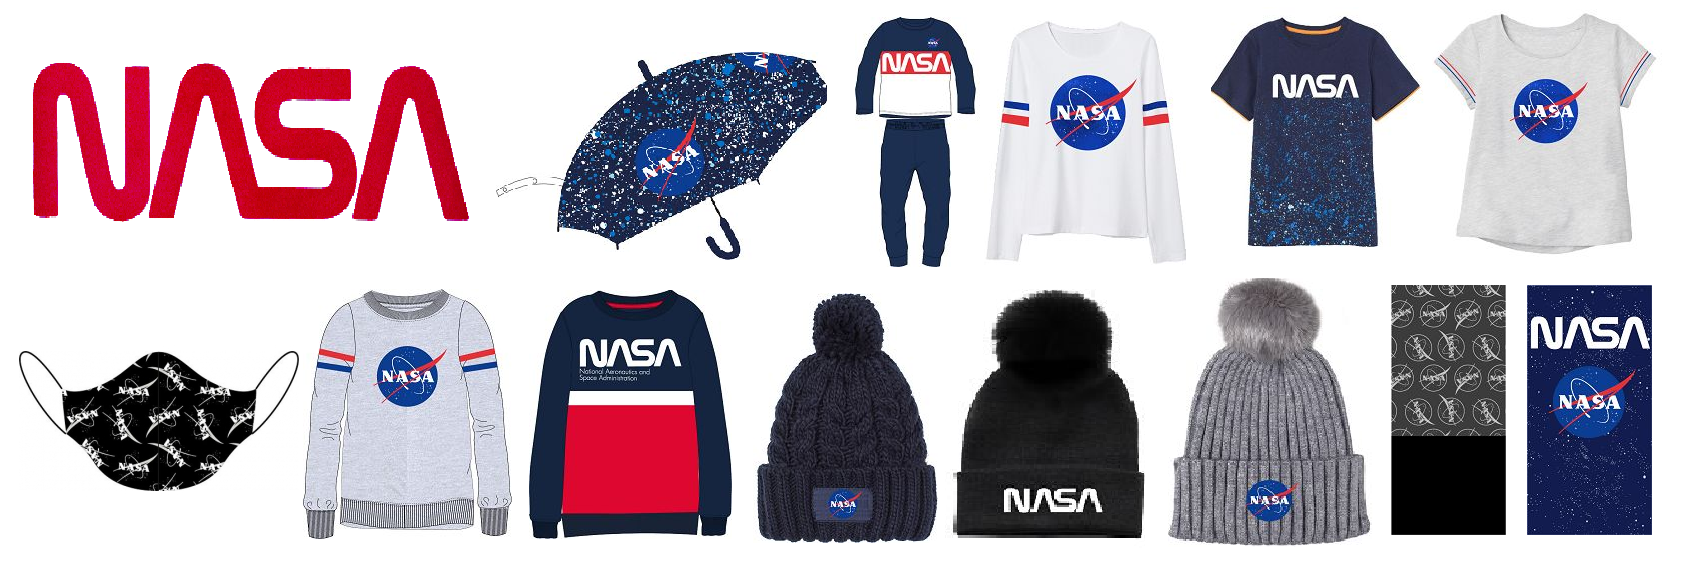 Nasa wholesaler apparel